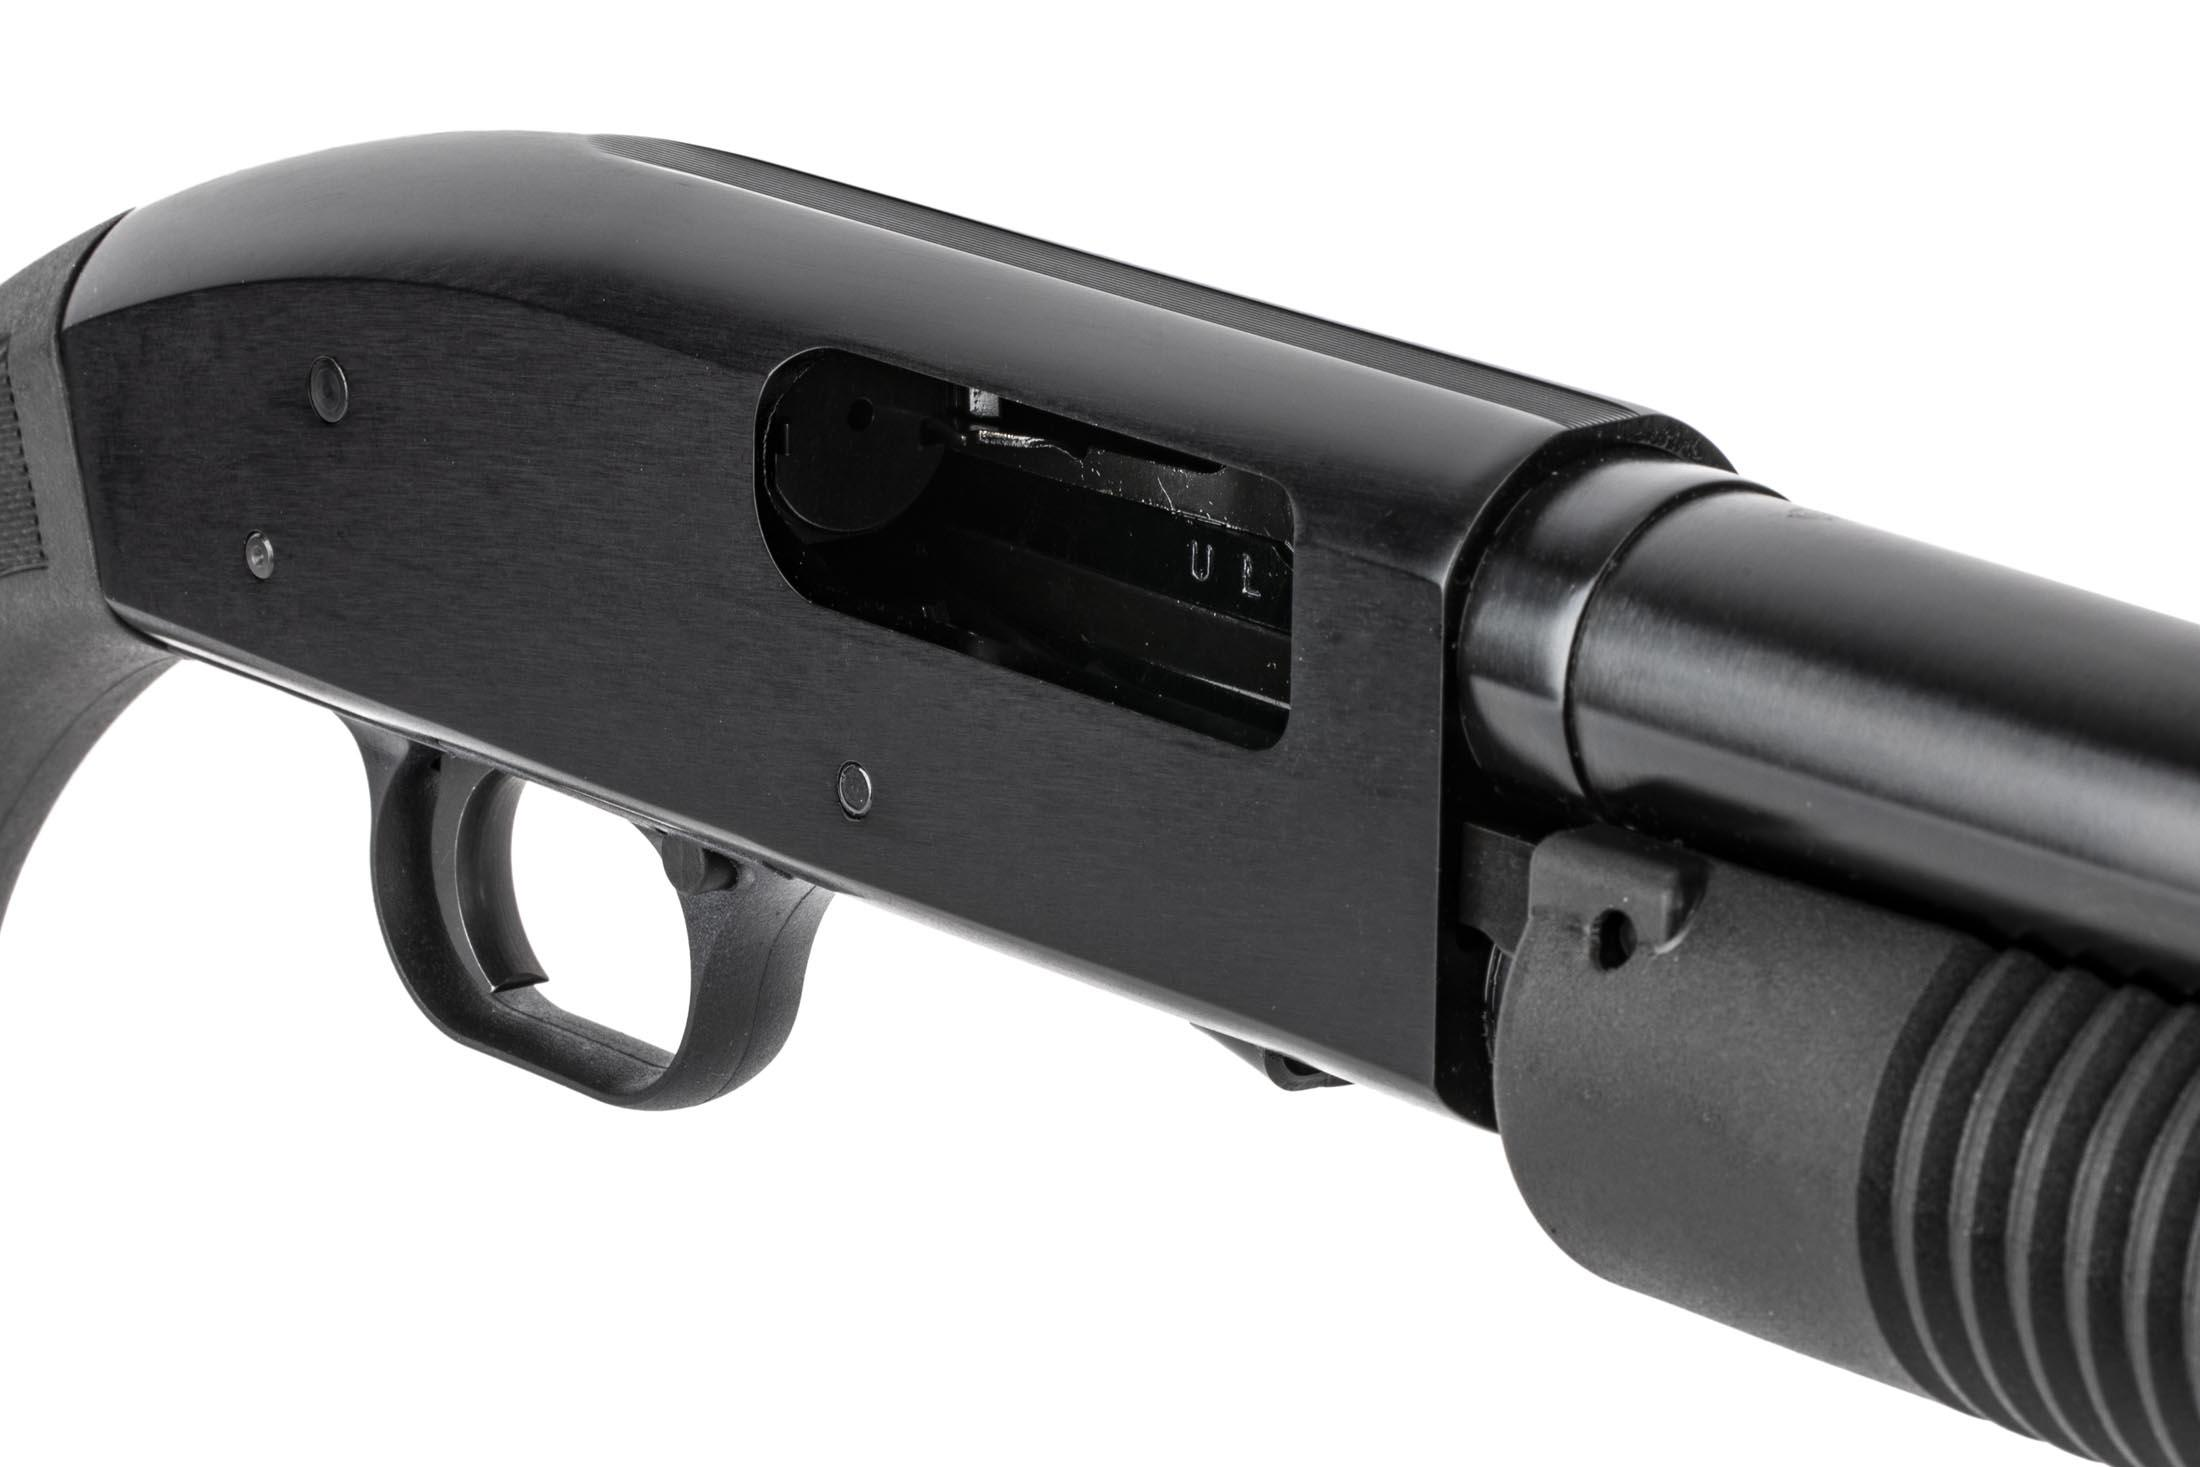 Mossberg's 18.5in Maverick 88 pump action 12 gauge is equipped with a simple crossbolt safety selector.